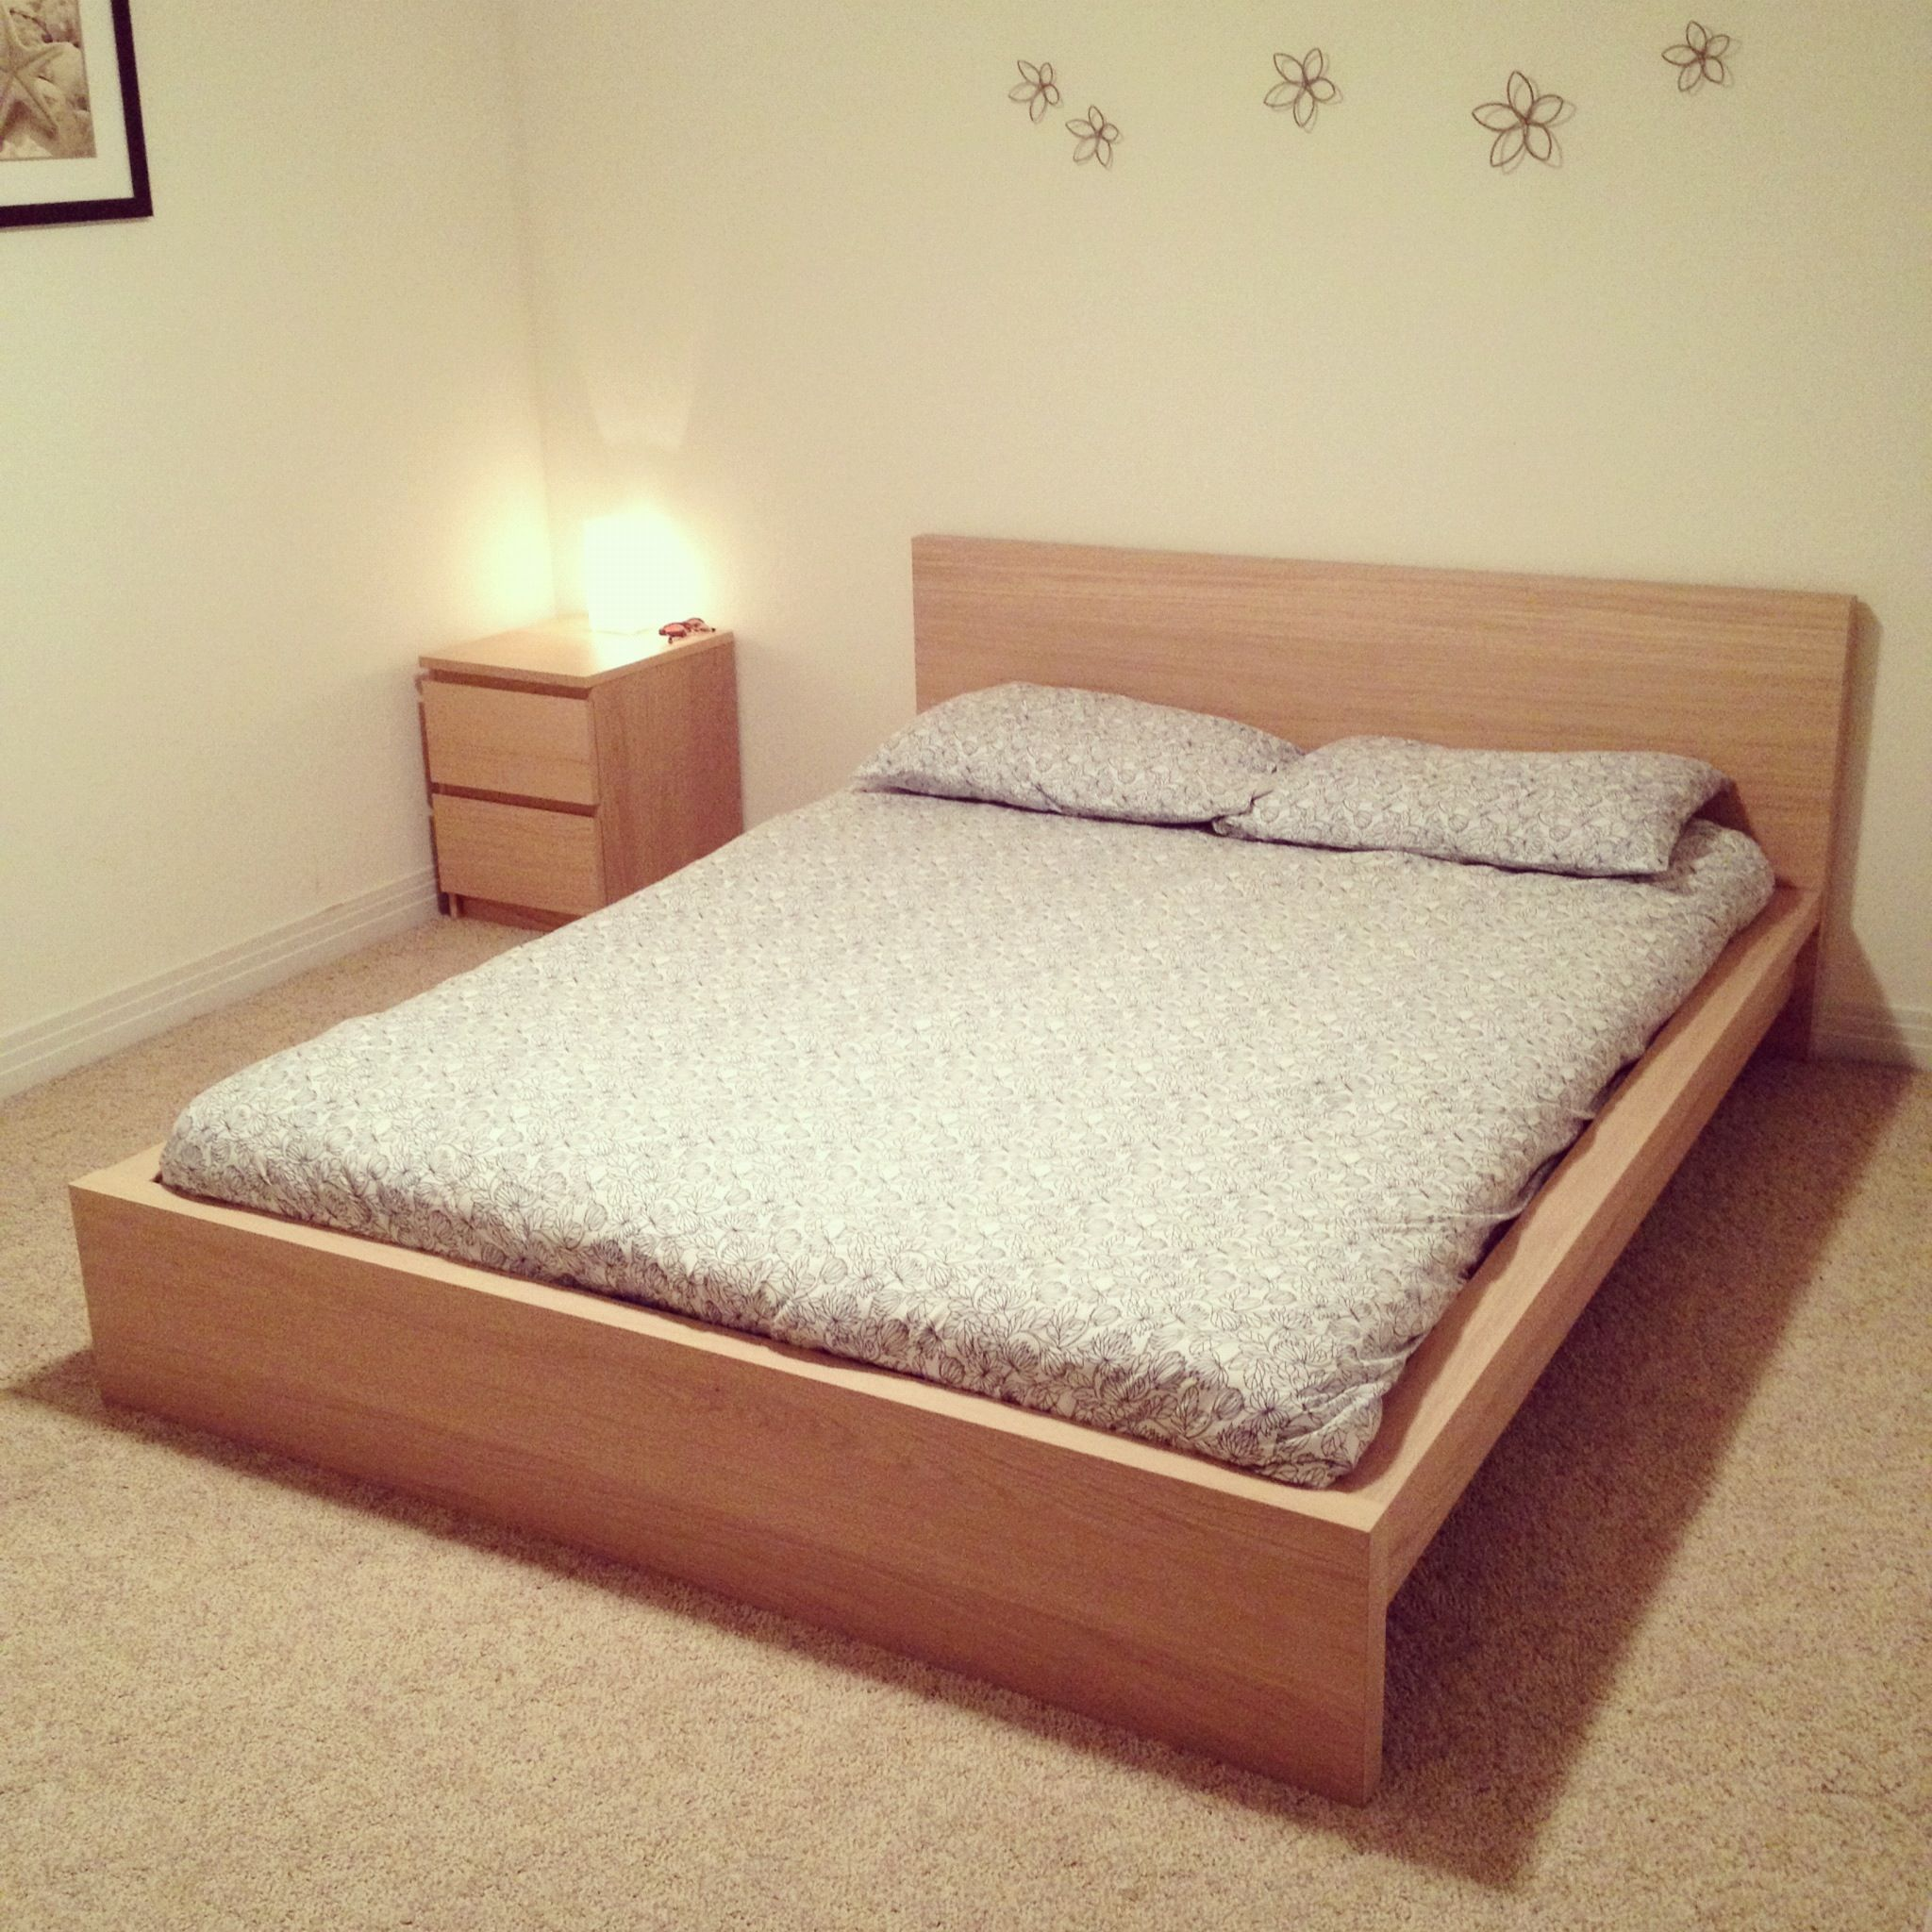 Ikea malm bed with side dresser for the home pinterest ikea malm bed ikea malm and malm Bed with mattress